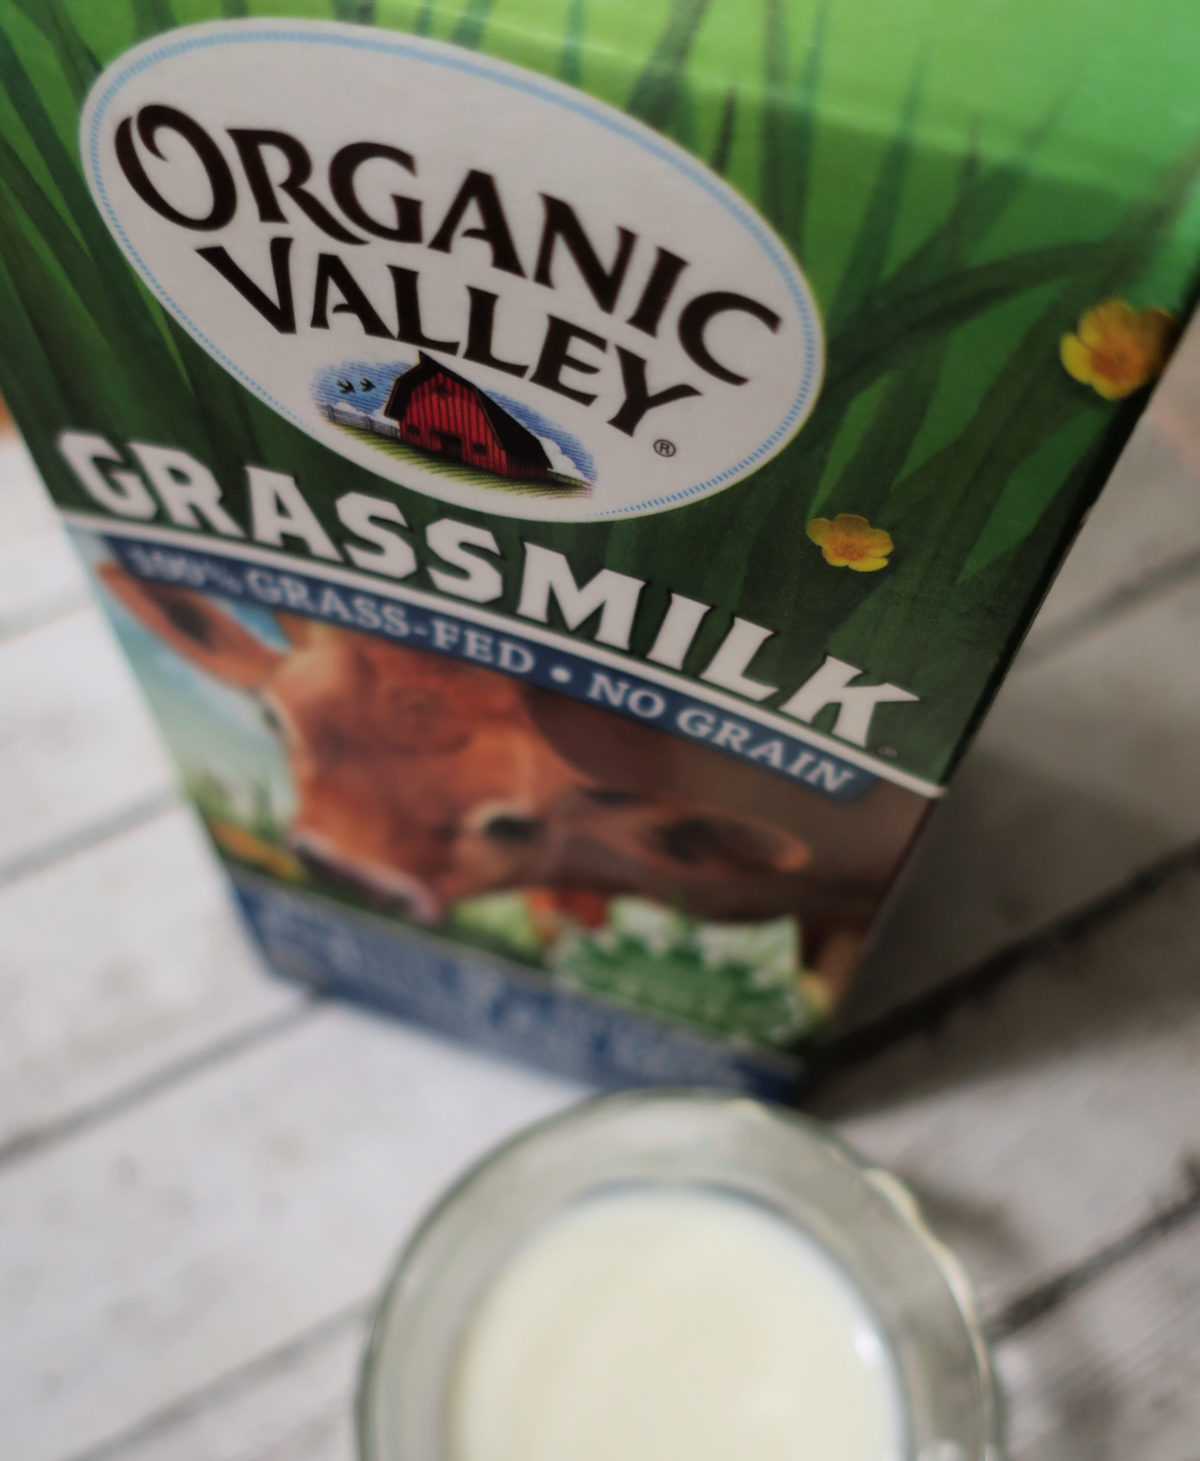 Organic Valley grassfed milk